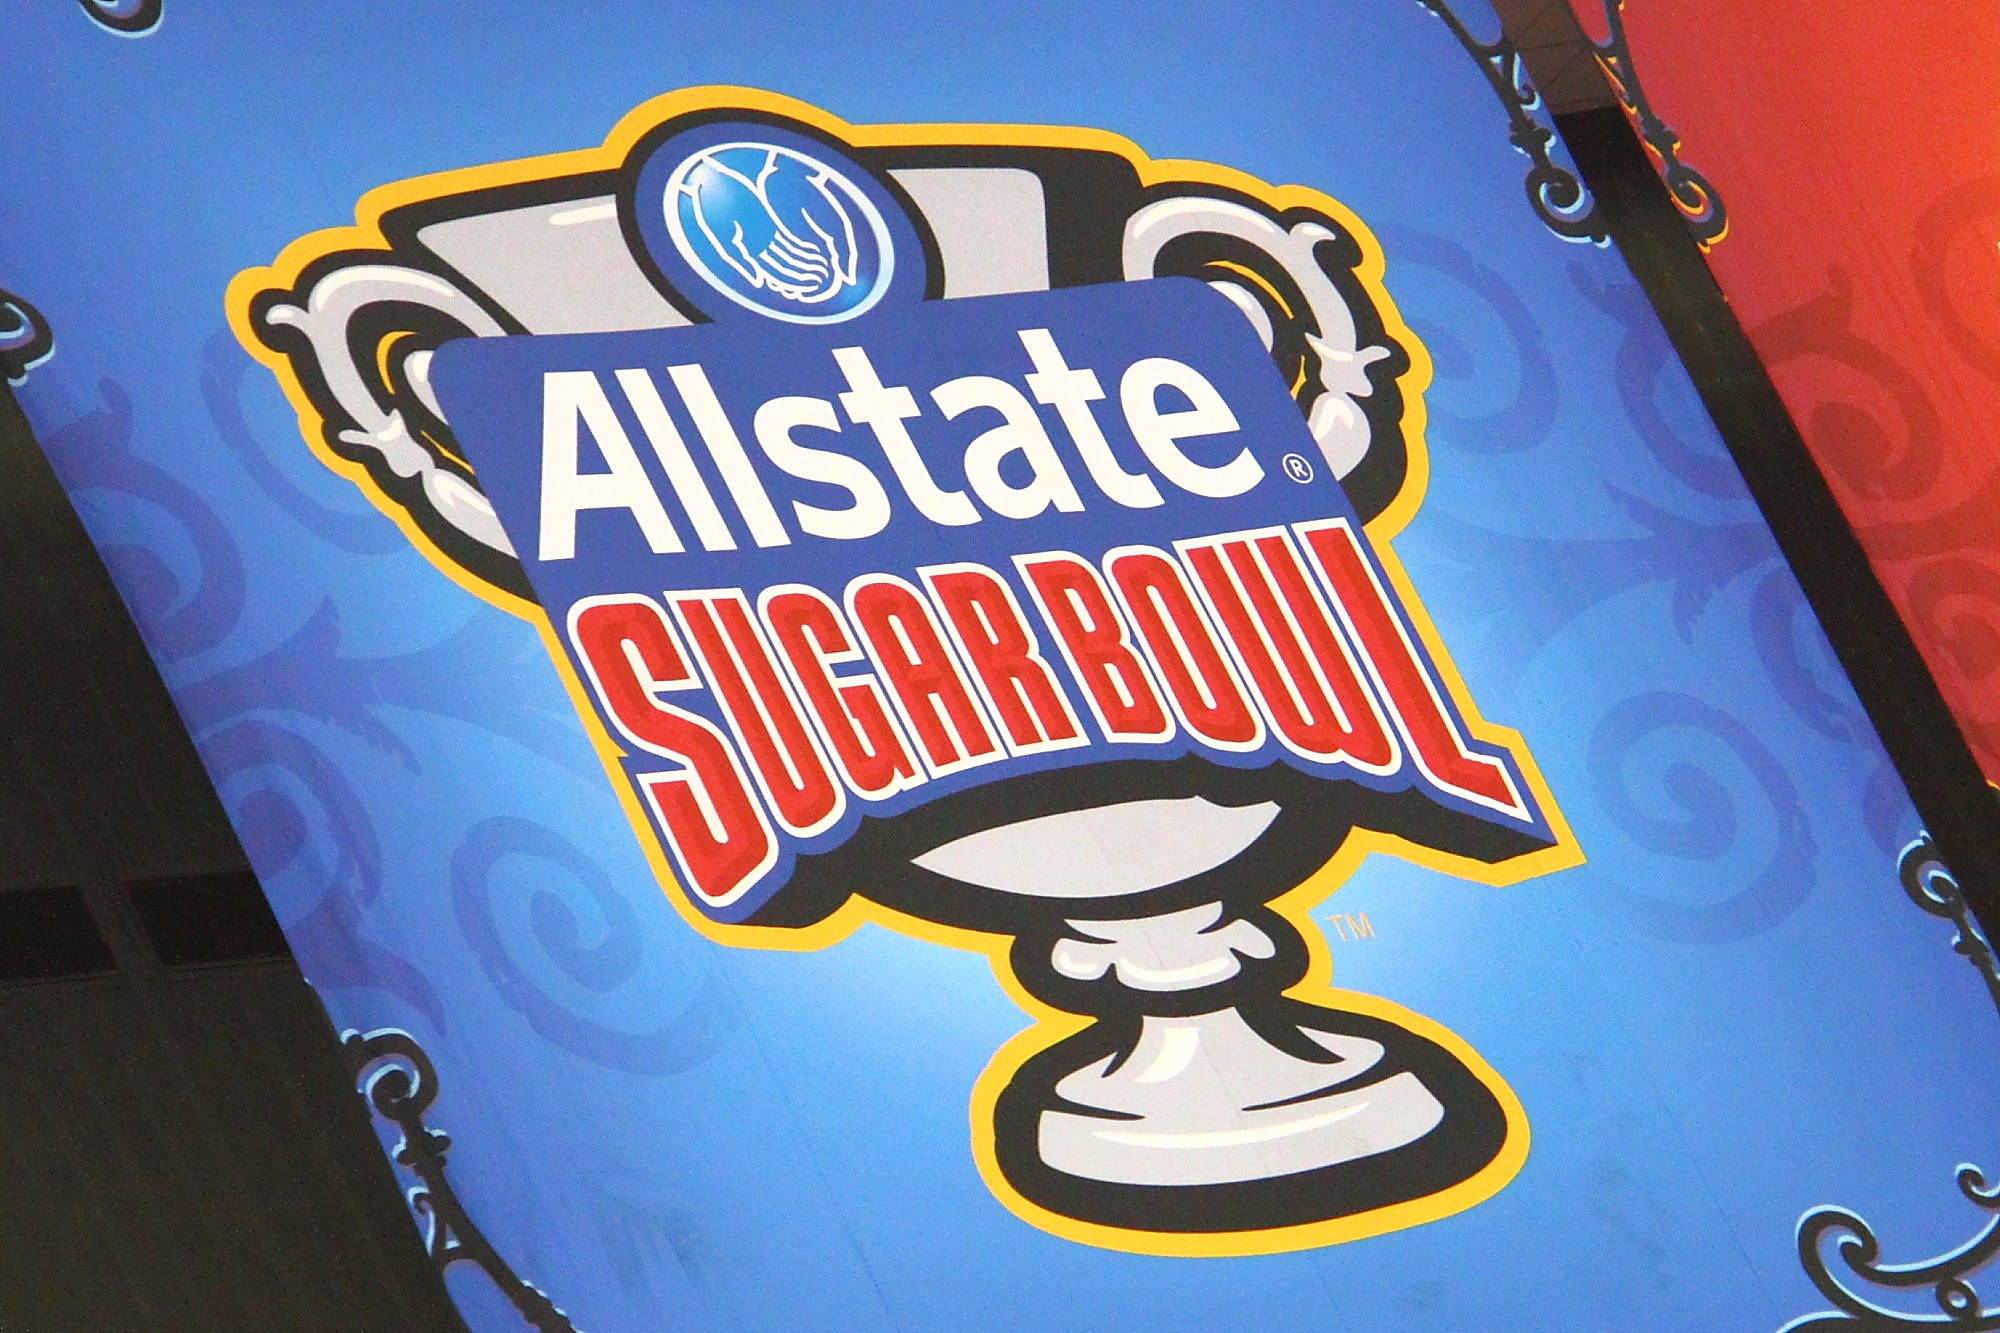 SugarBowl_06.JPG